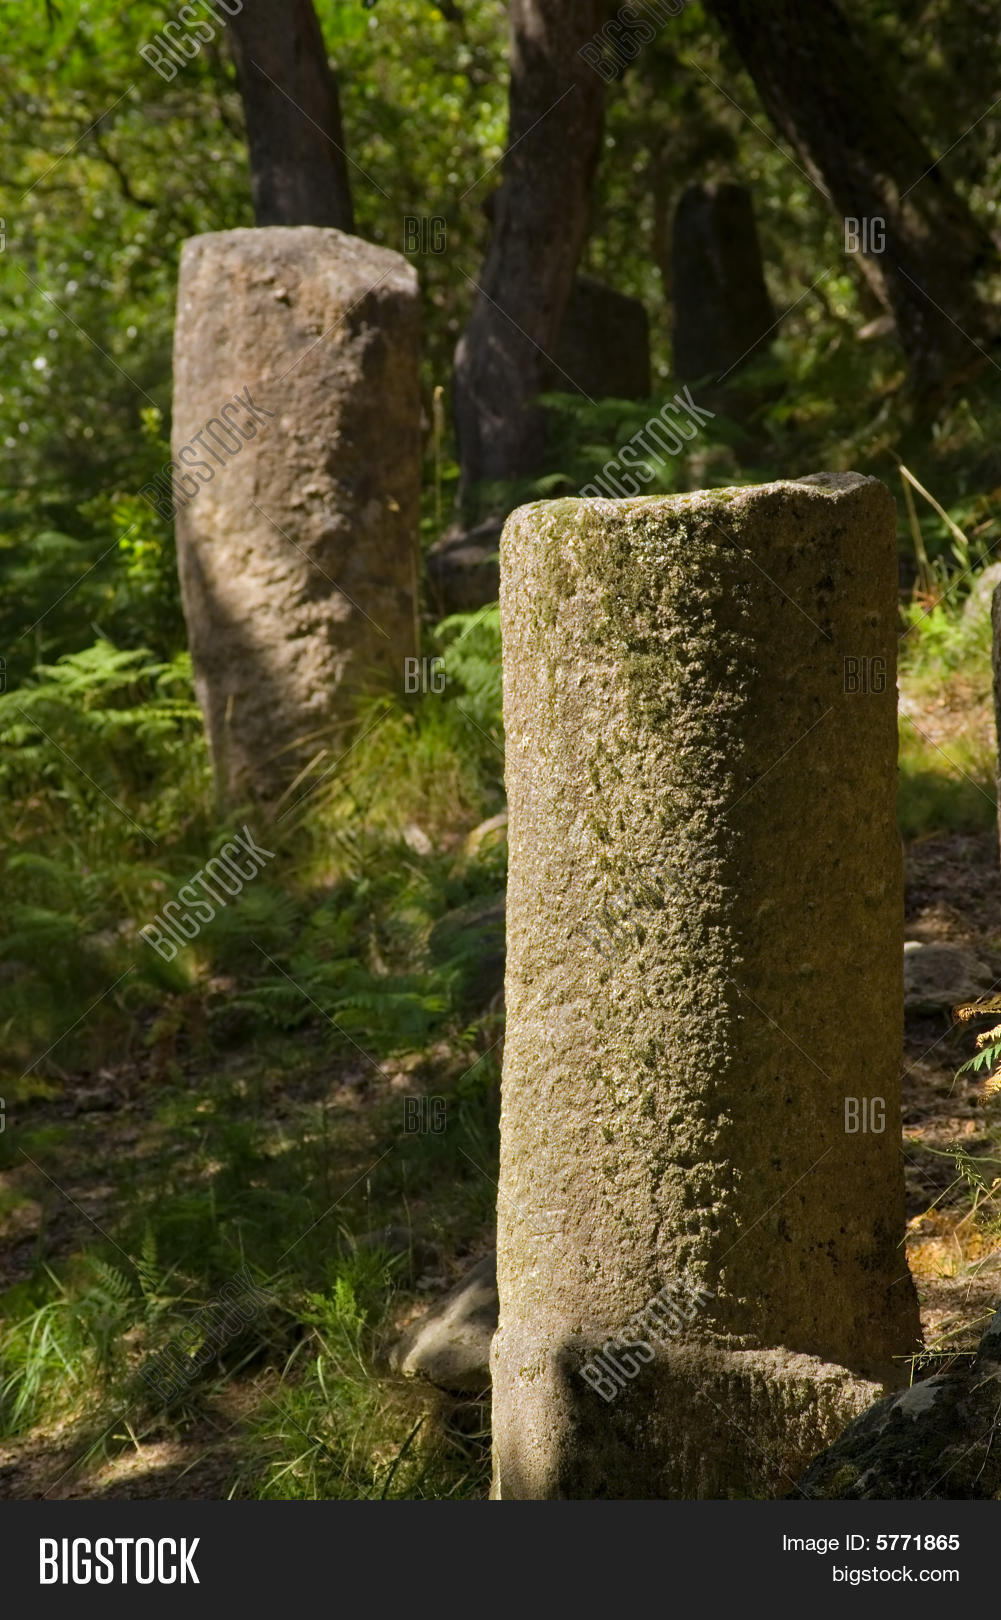 Roman mile markers on the ancient roman road (geira) that connected Bracara Augusta to Asturica Augusta. Gerês, Portugal.